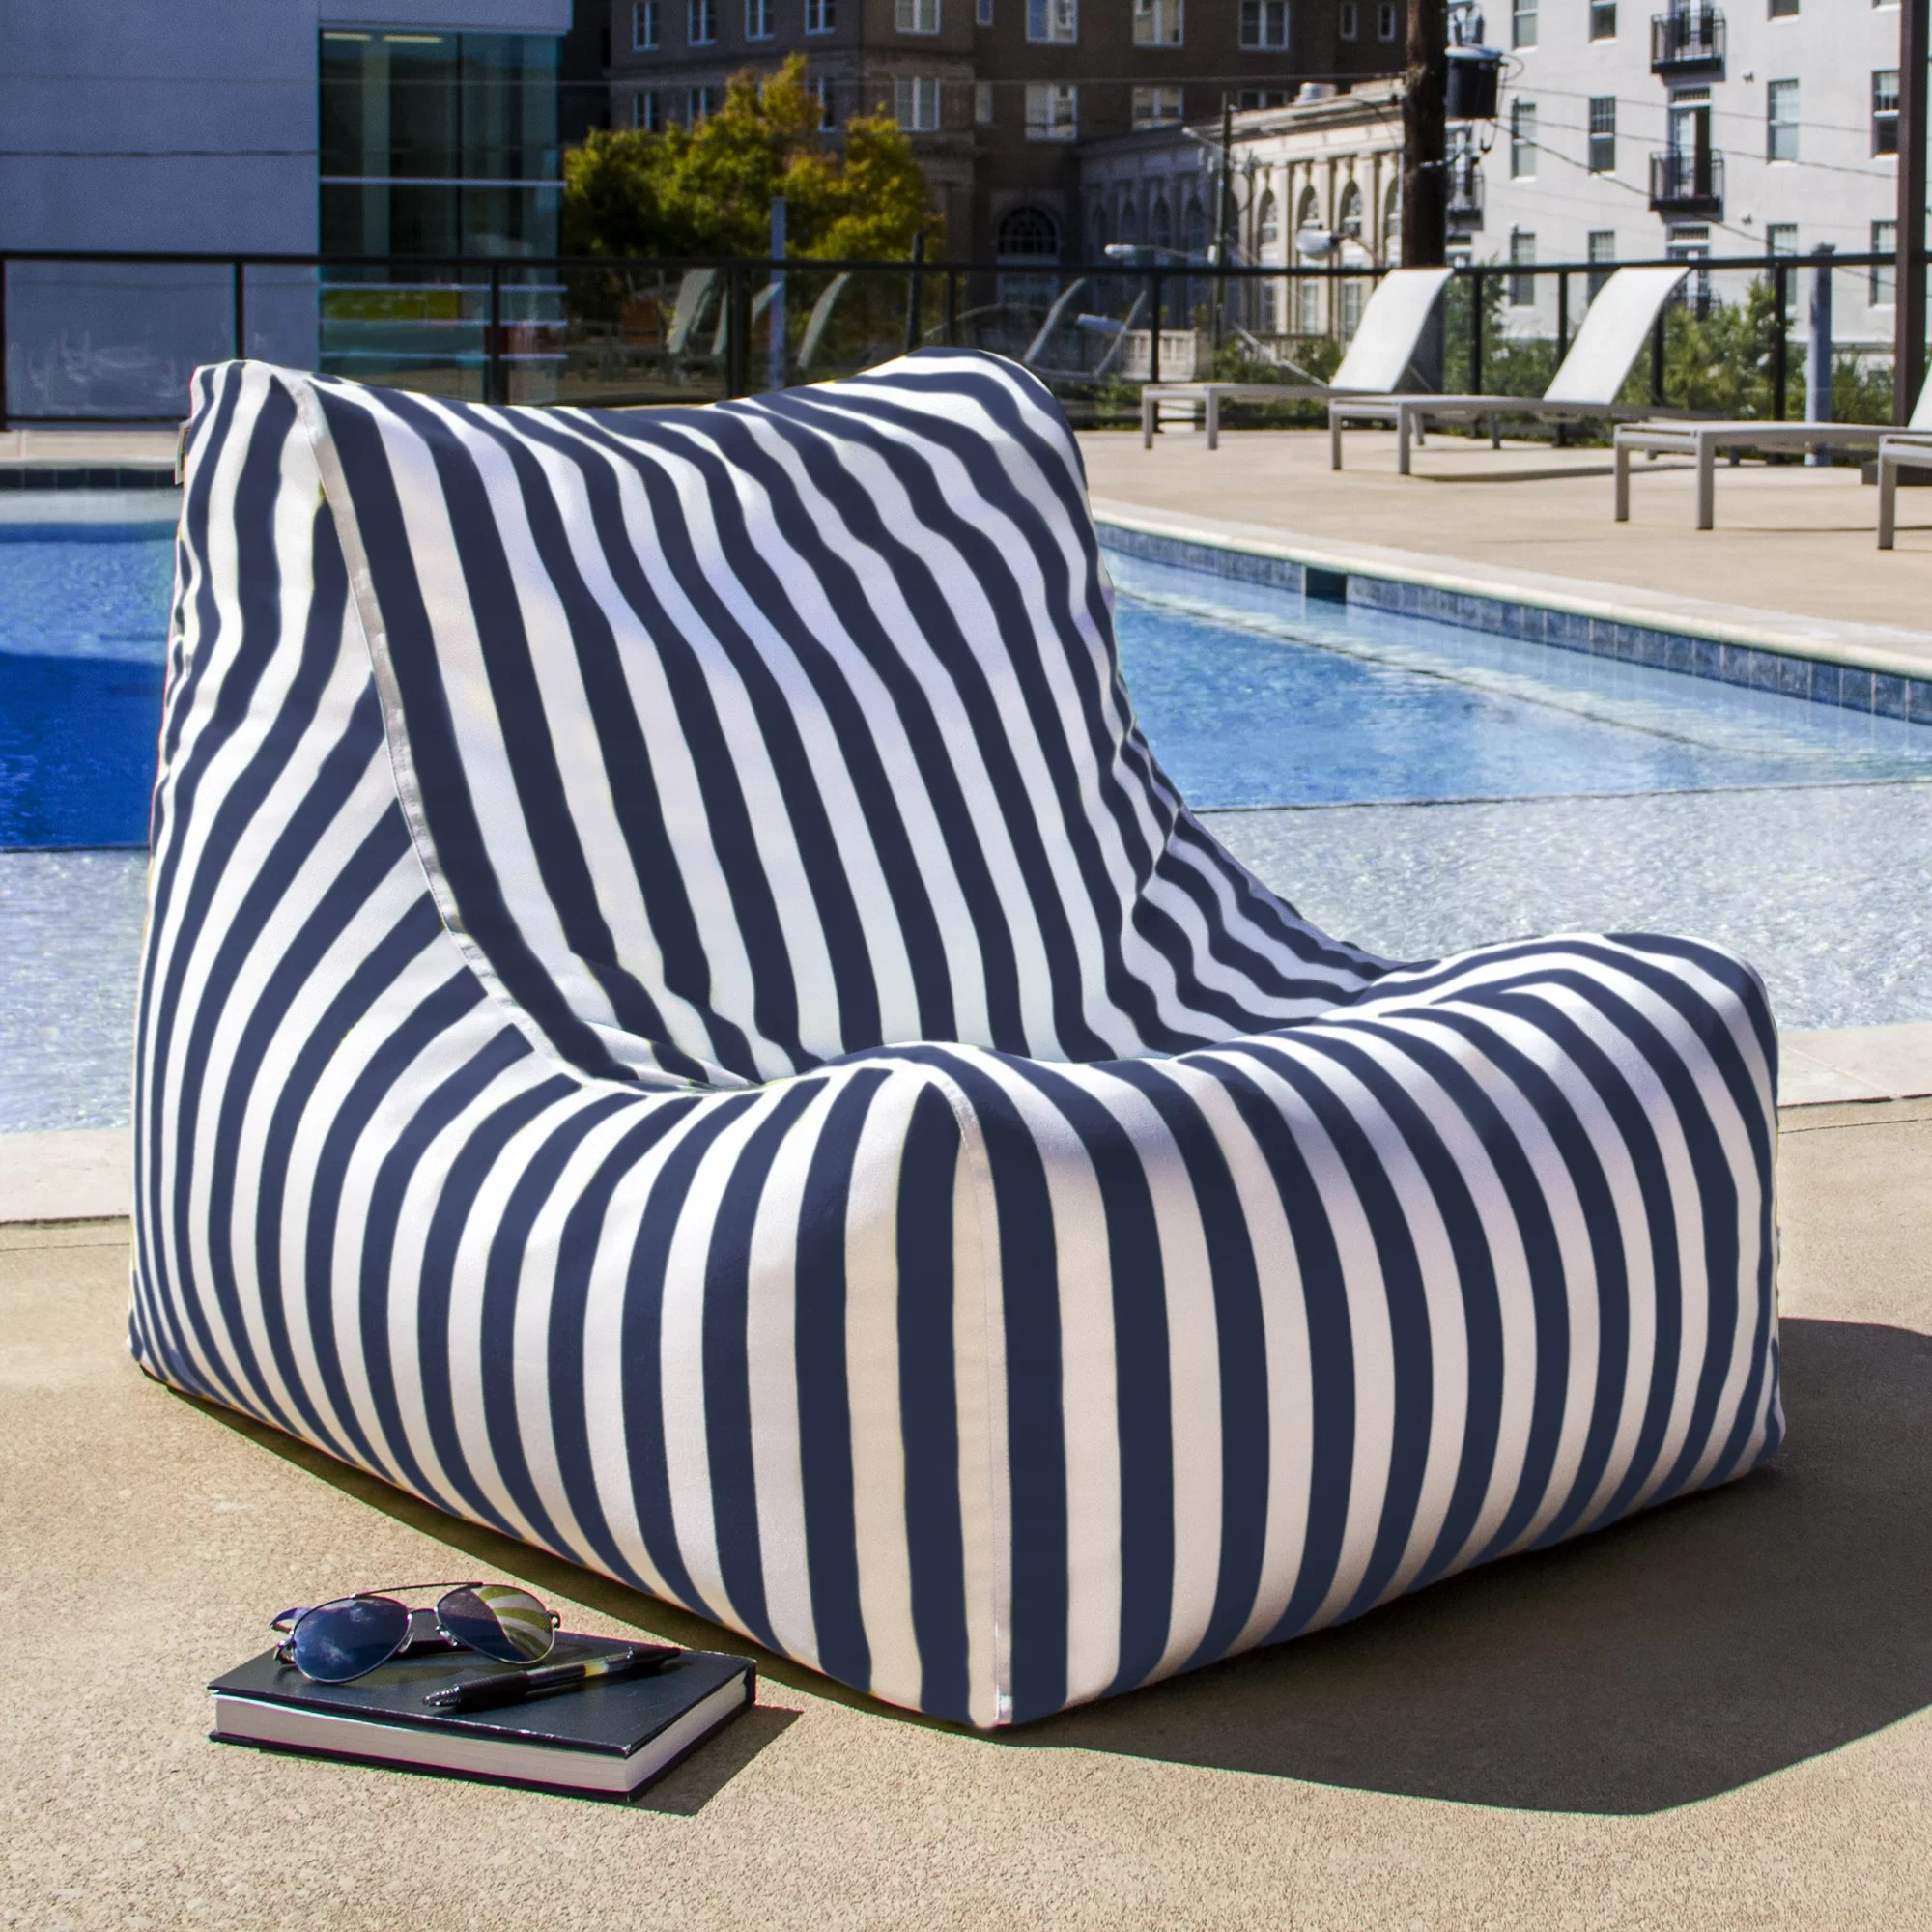 Outside Lounge Chairs Jaxx Ponce Outdoor Striped Patio Lounge Chair Reviews Wayfair